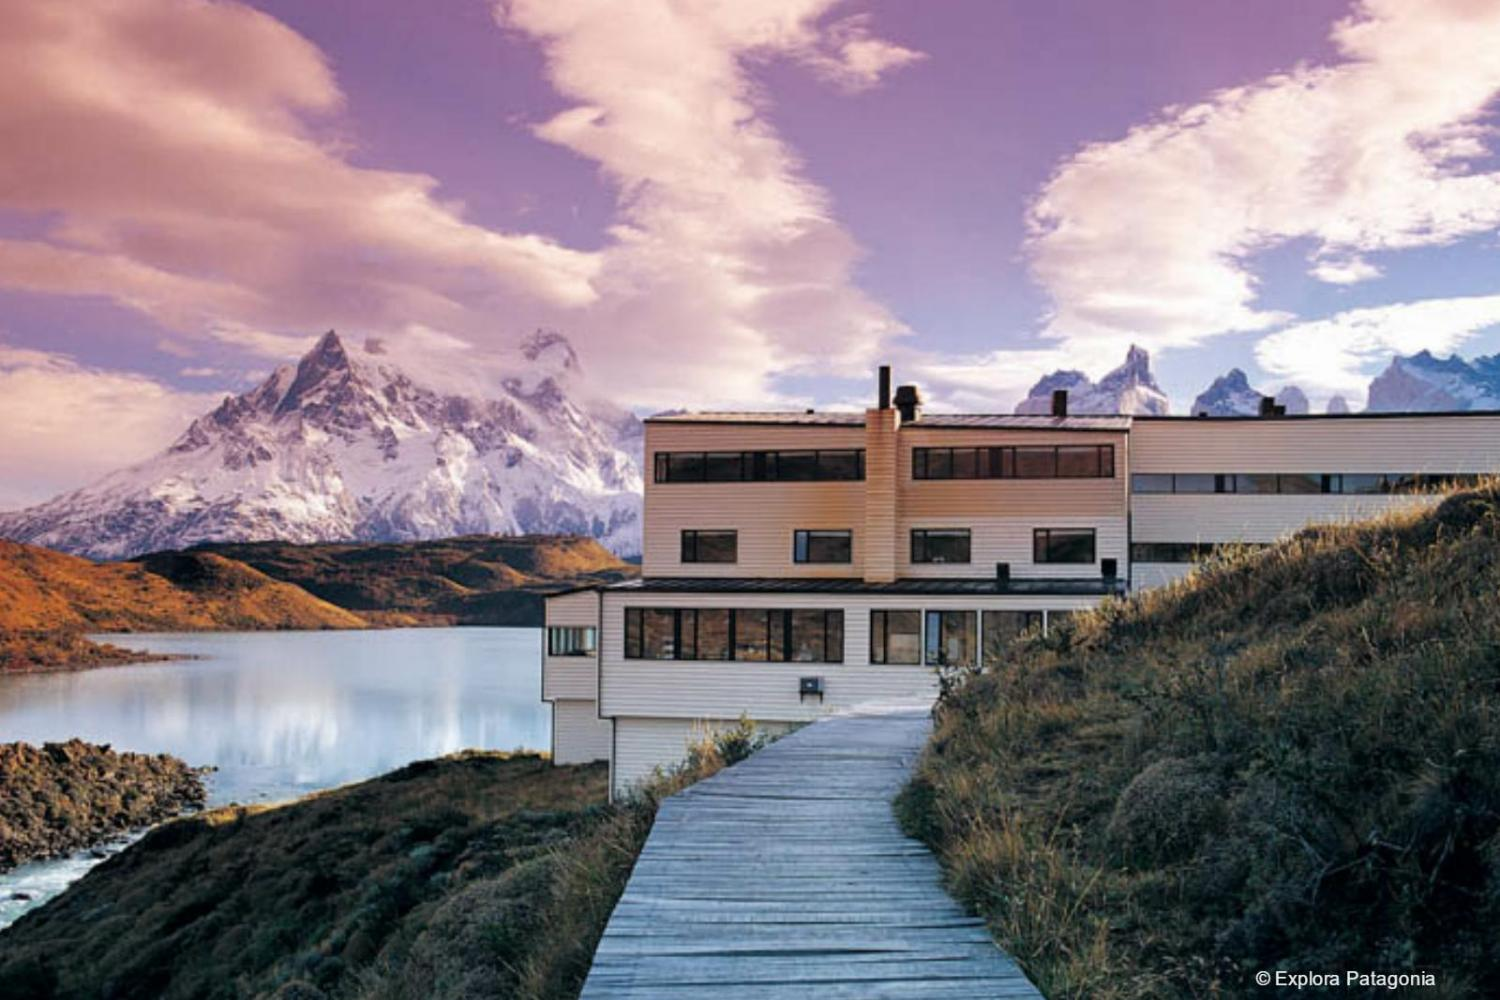 Das Explora Patagonia Hotel in Chile